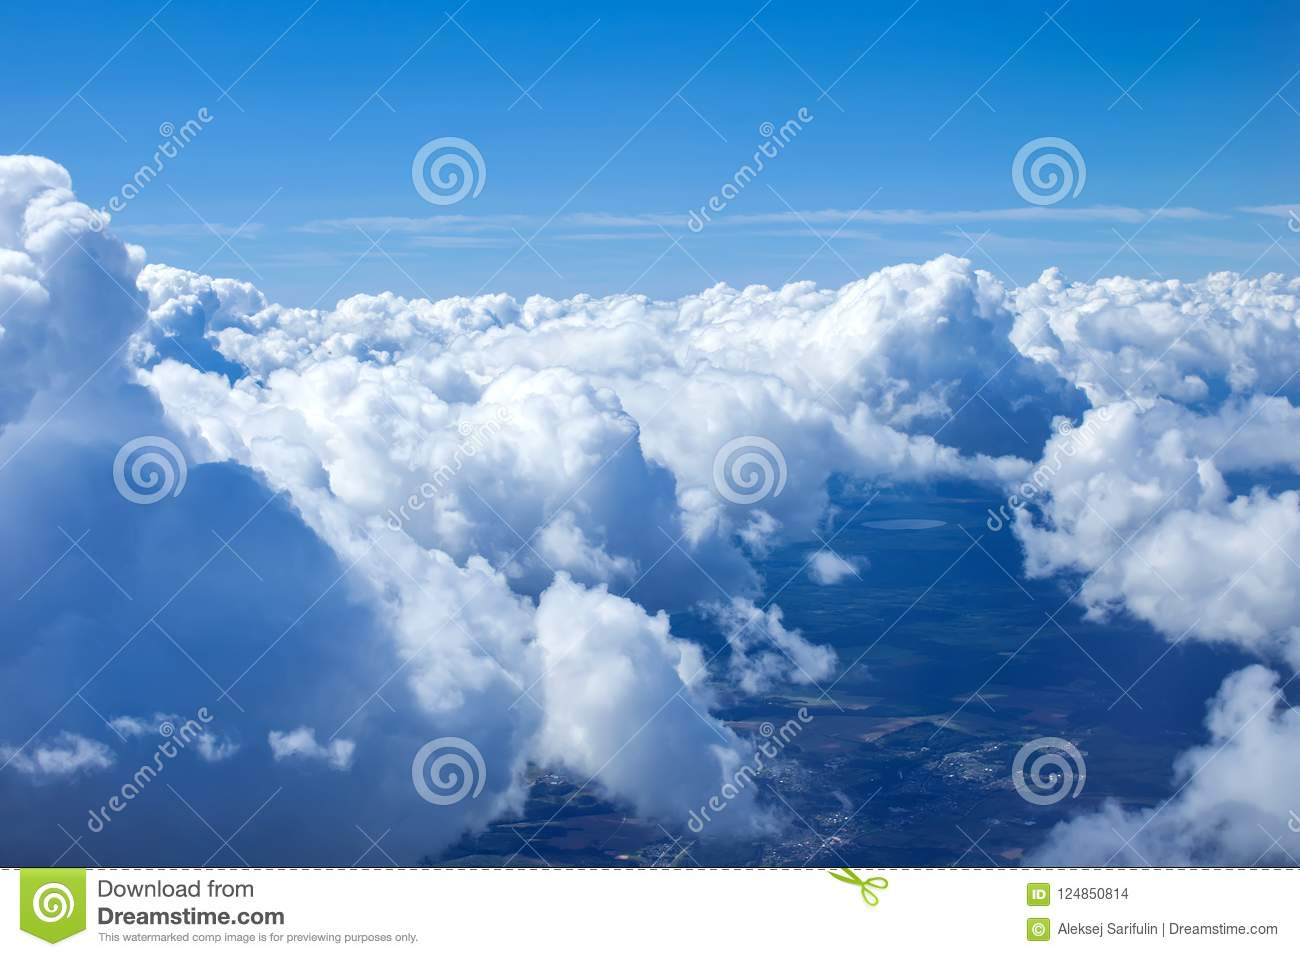 Awe Inspiring Airplain Window Seat View Of Big White Thick Fluffy Clouds Beatyapartments Chair Design Images Beatyapartmentscom